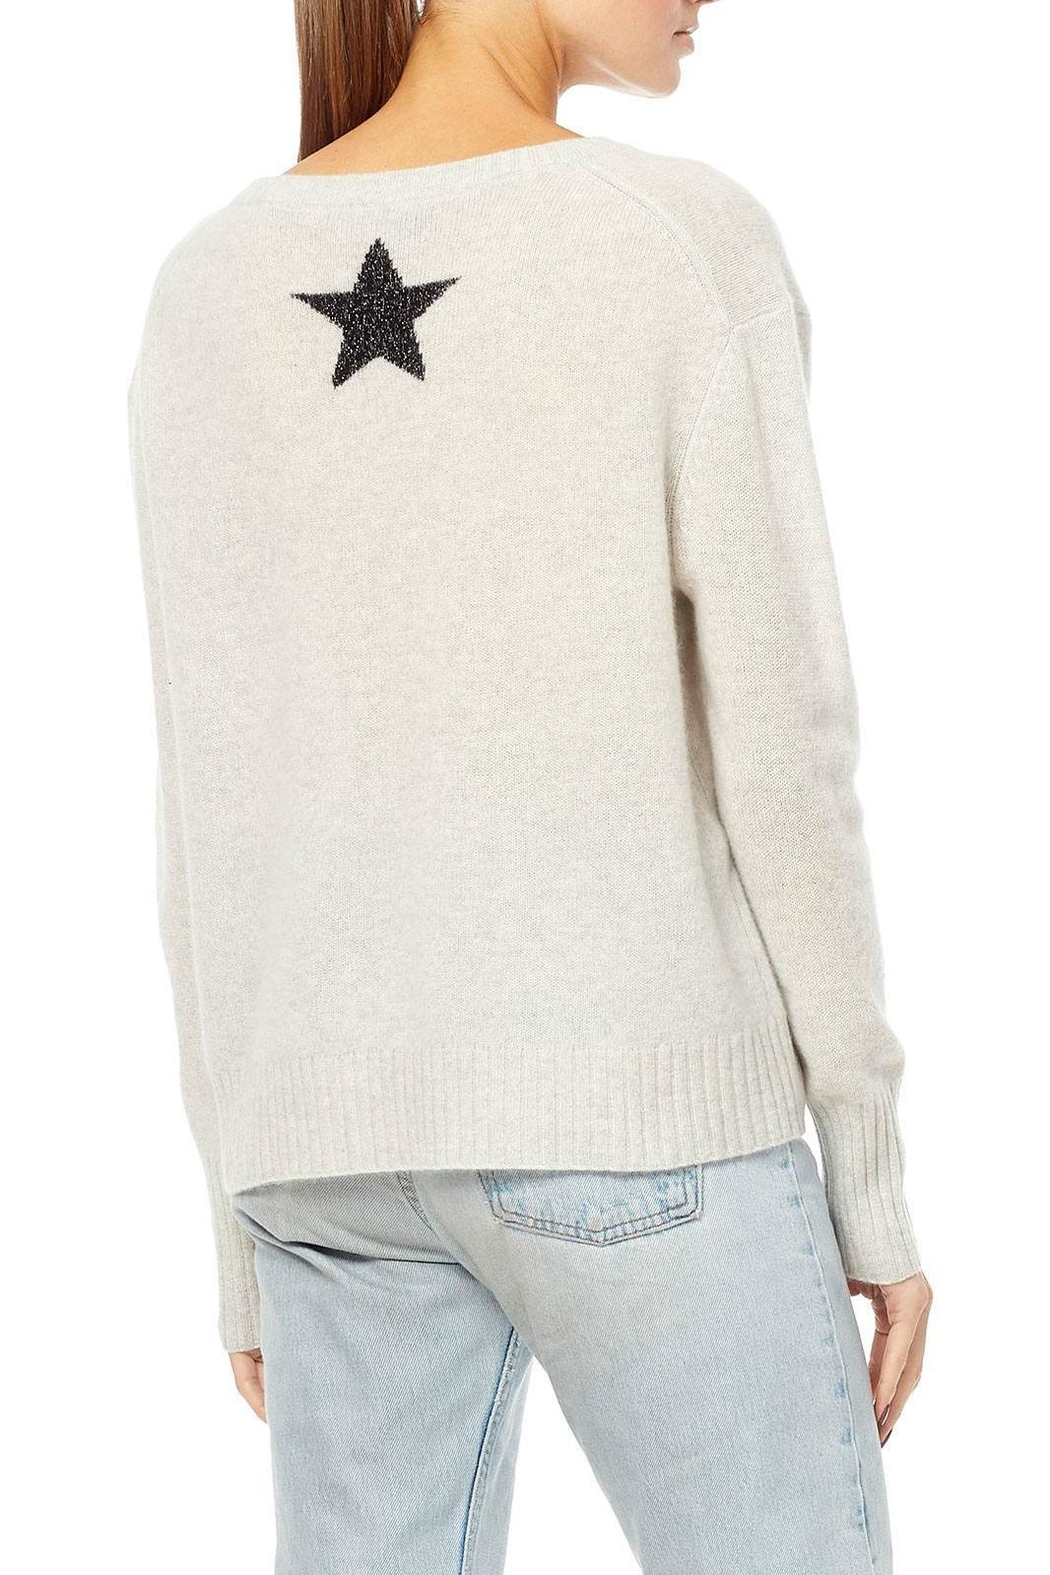 360 Cashmere Cashmere Star Sweater - Front Full Image